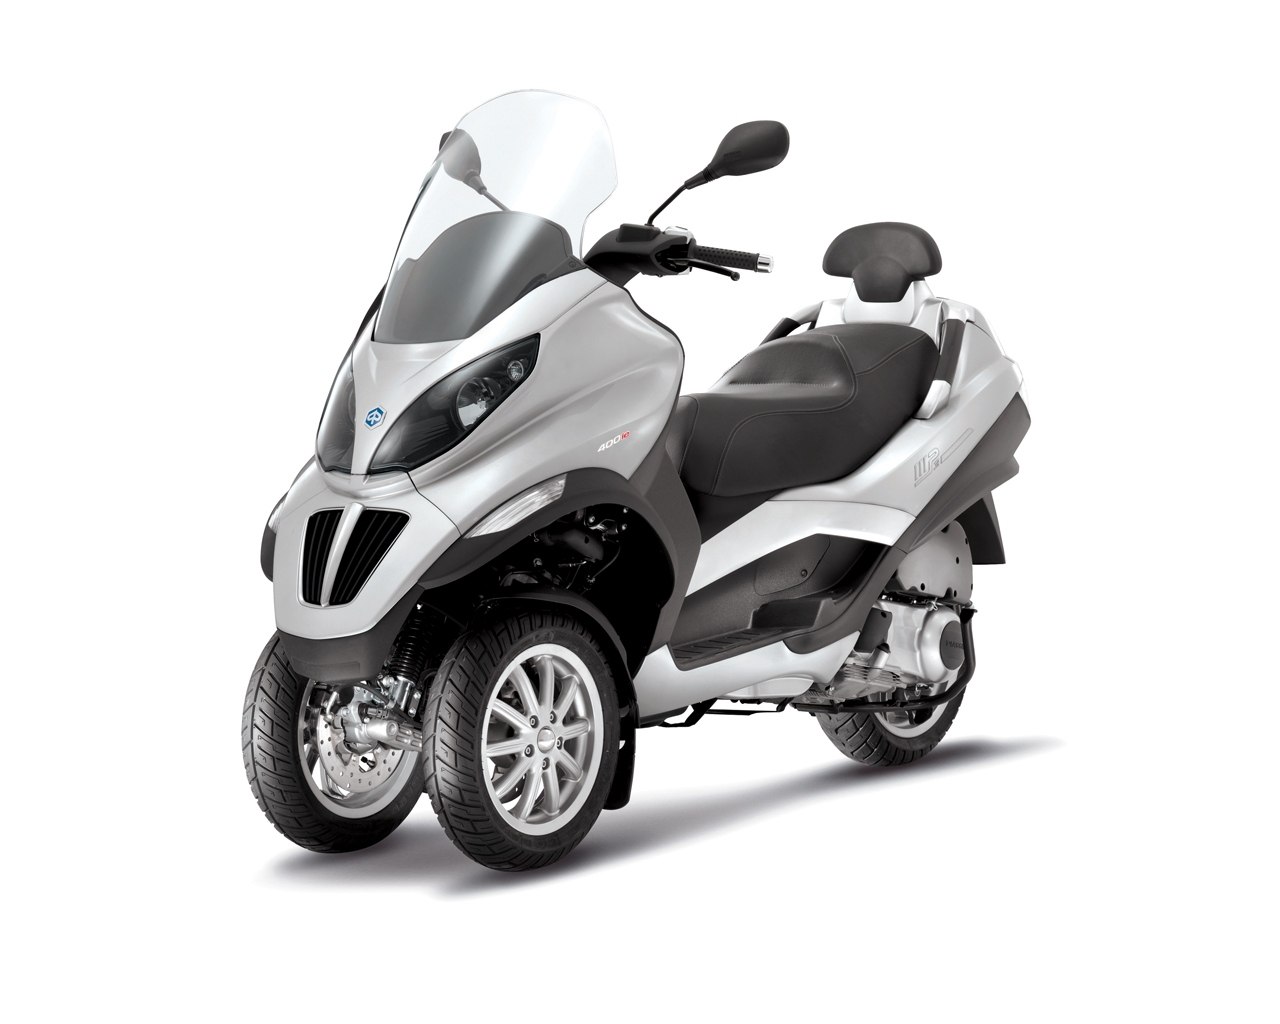 2013 piaggio mp3 400, awesome 3-wheeled commuting - autoevolution